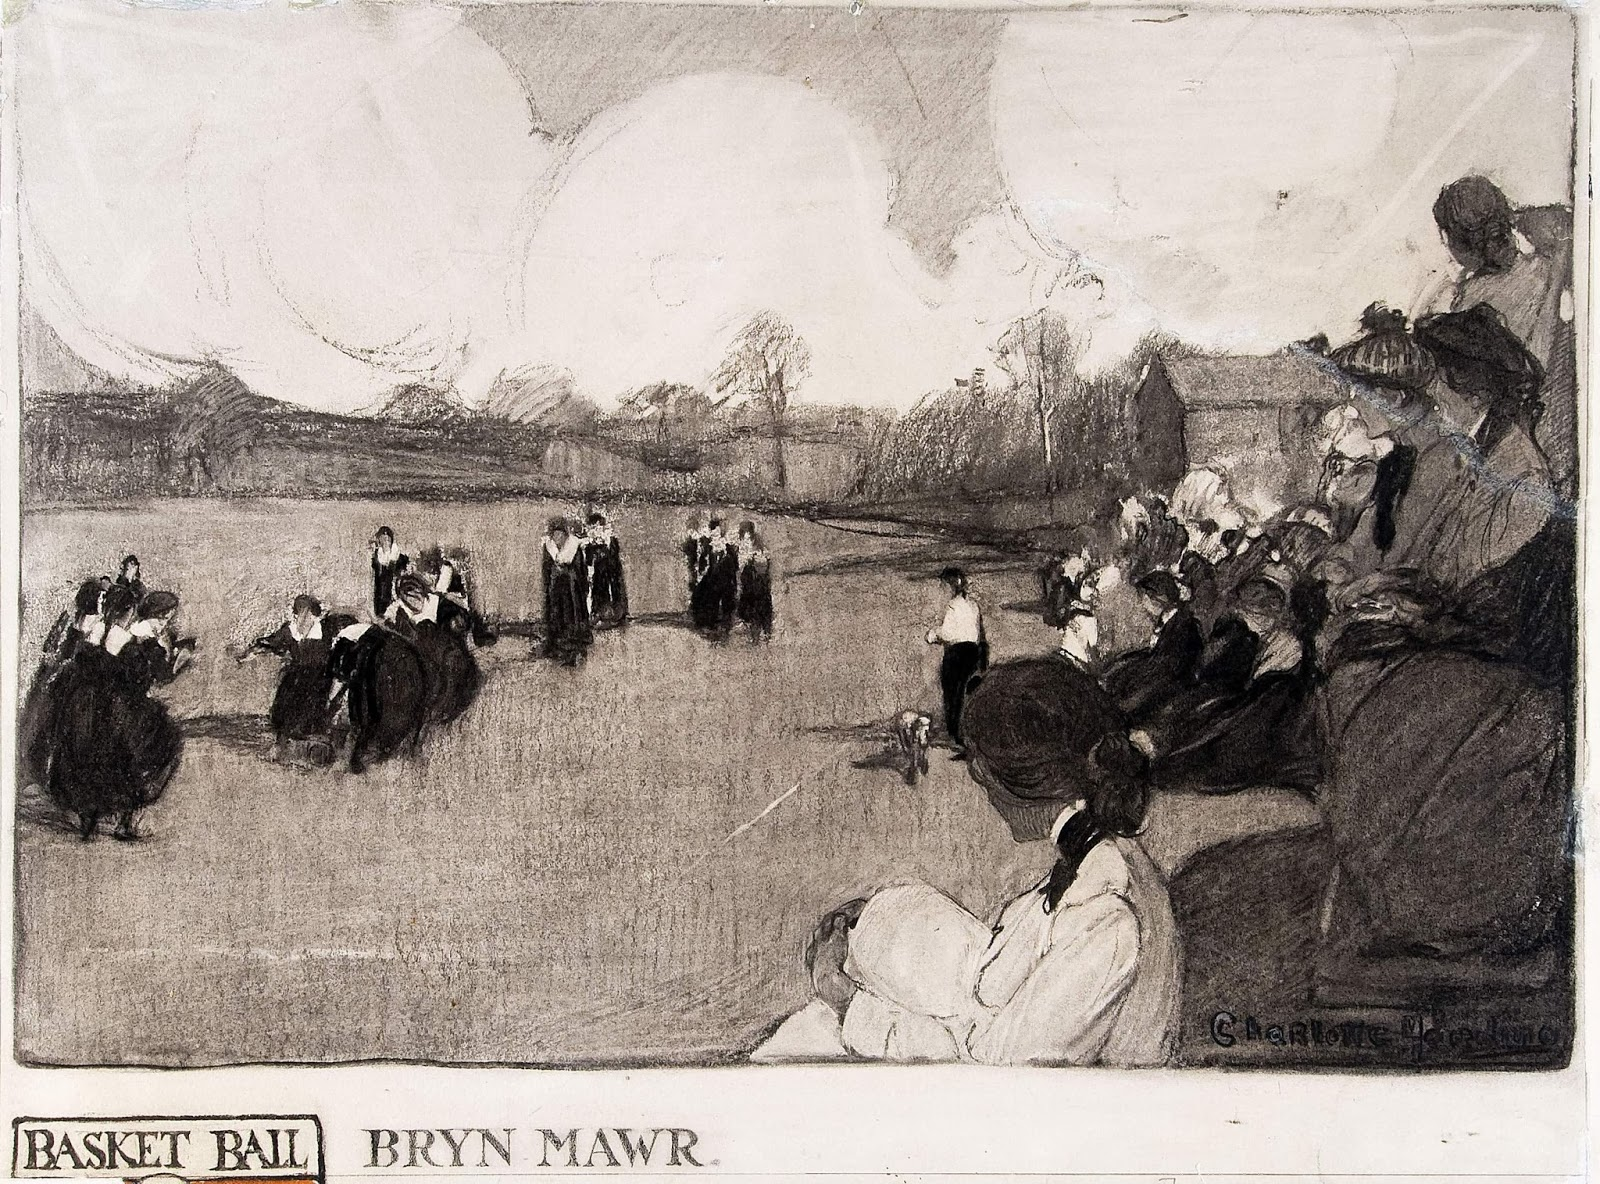 bryn mawr buddhist single women Starting the bryn mawr school for women in baltimore more than any other single person finding aid to the mary garrett papers, bryn mawr college library.